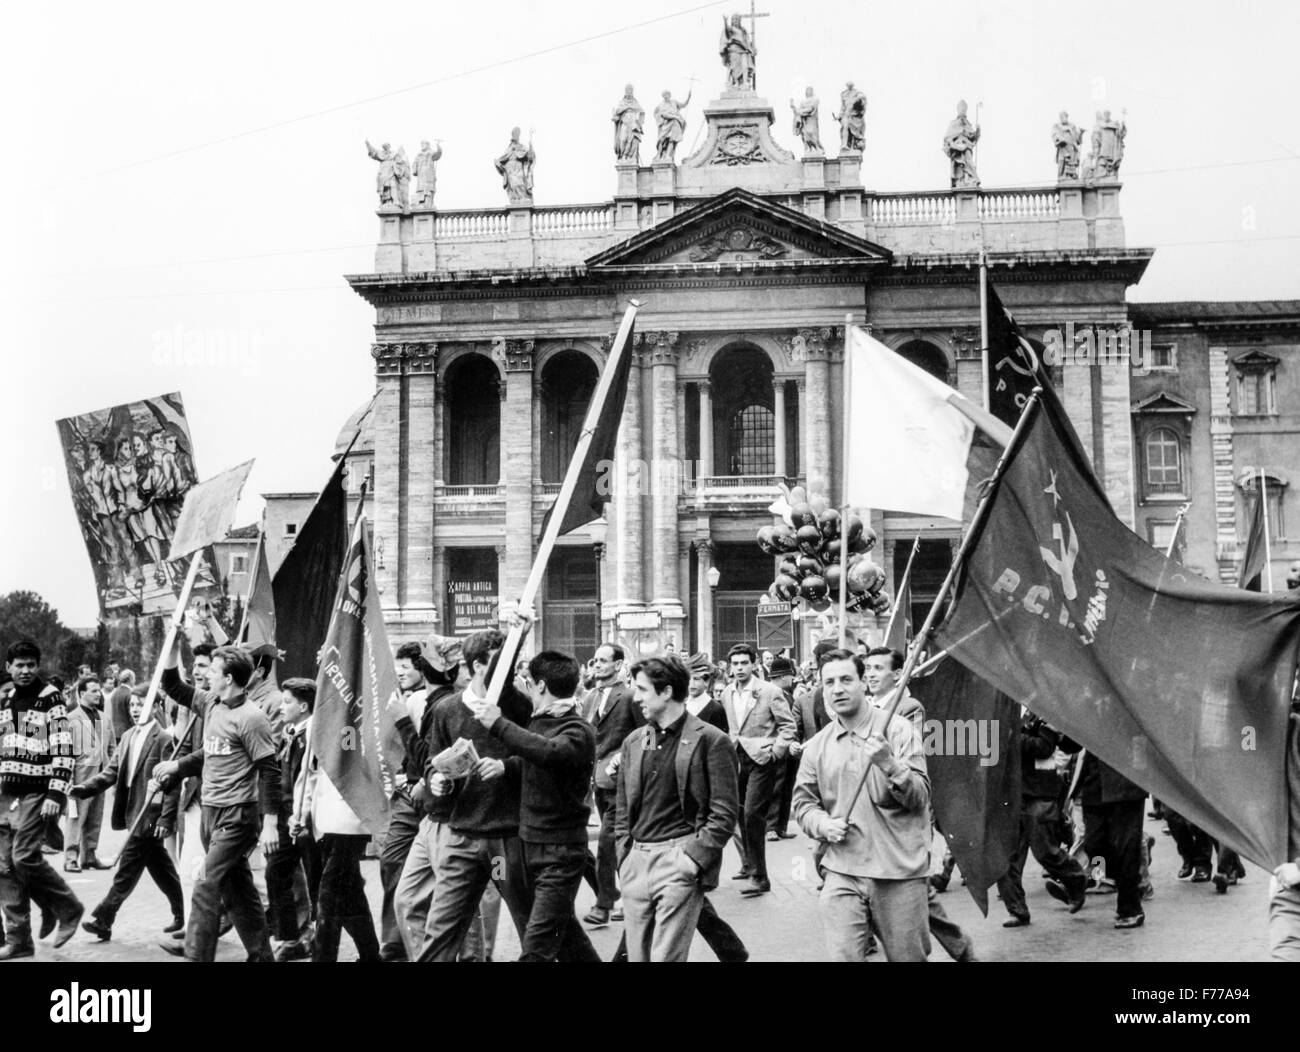 1st May in Rome,the event pci 1966 - Stock Image